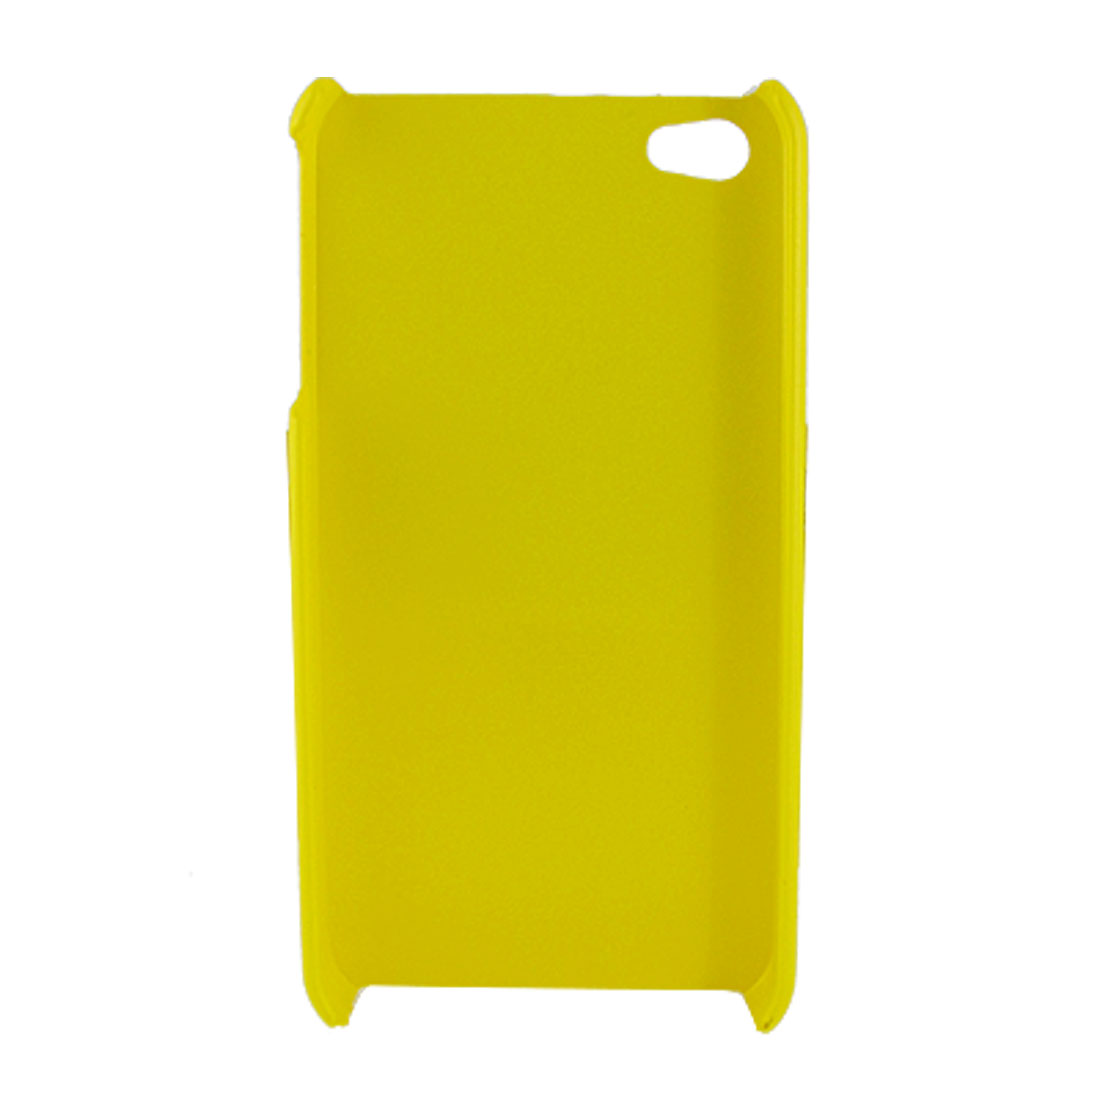 Rubberized Yellow Hard Plastic Guard Case for Apple iPhone 4 4G